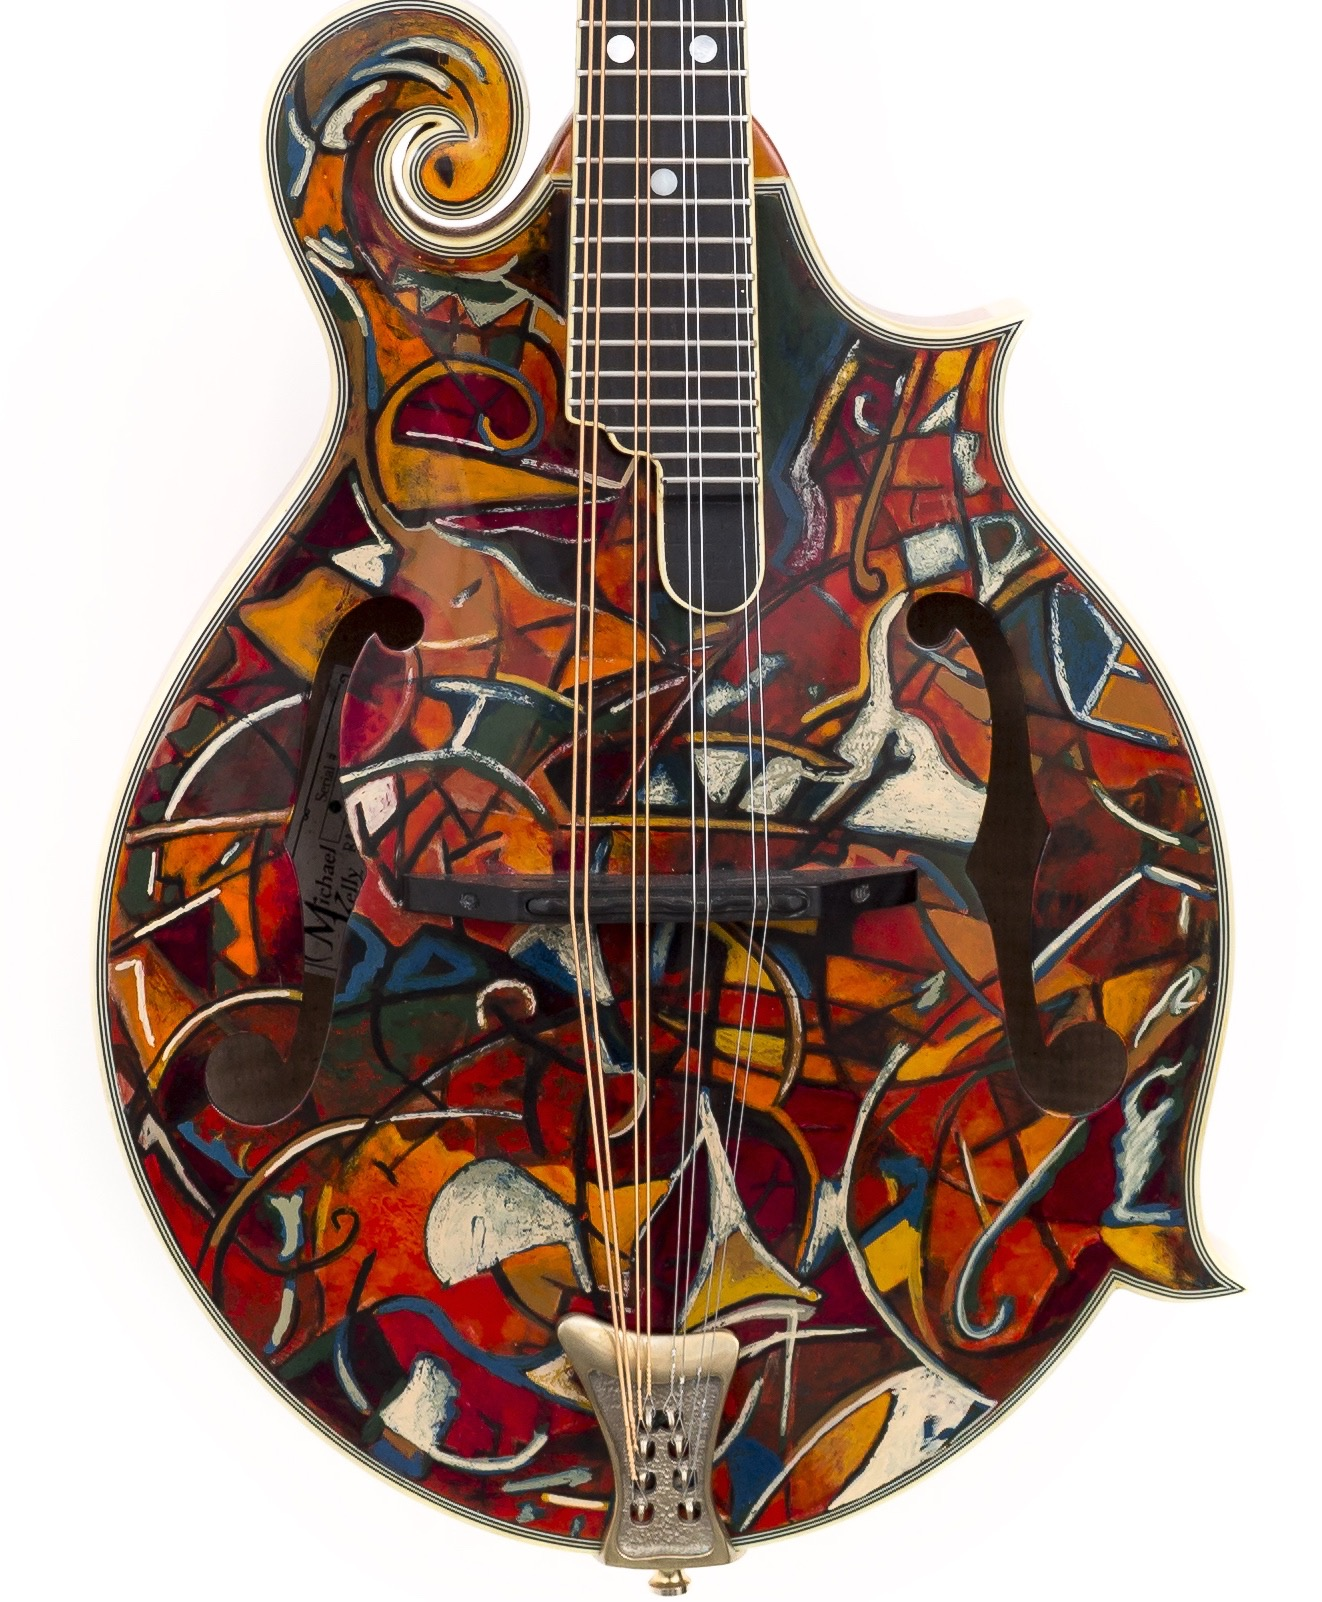 Abstraction  motif. Michael Kelly mandolin. Artists pigment in shellac on sitka spruce top, maple back and sides. $950.00